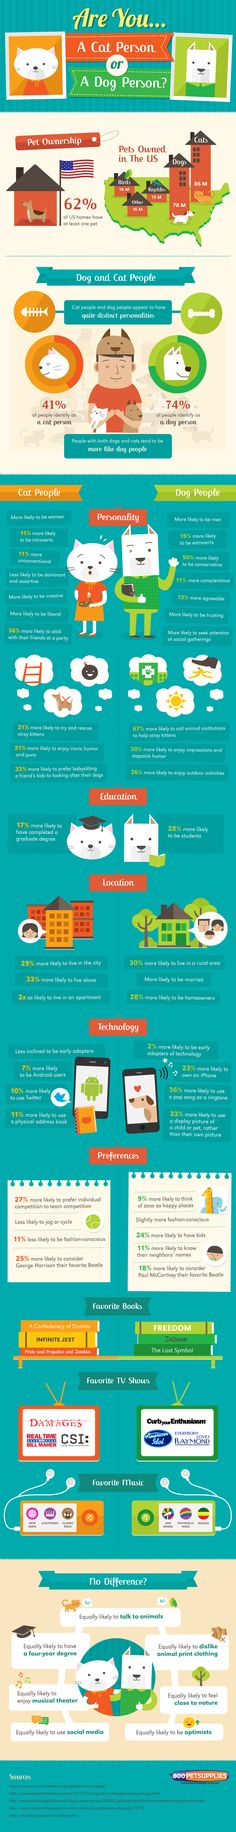 Are You A #Cat Or #Dog Person? - #Infographic Mom 'N Daughter Savings